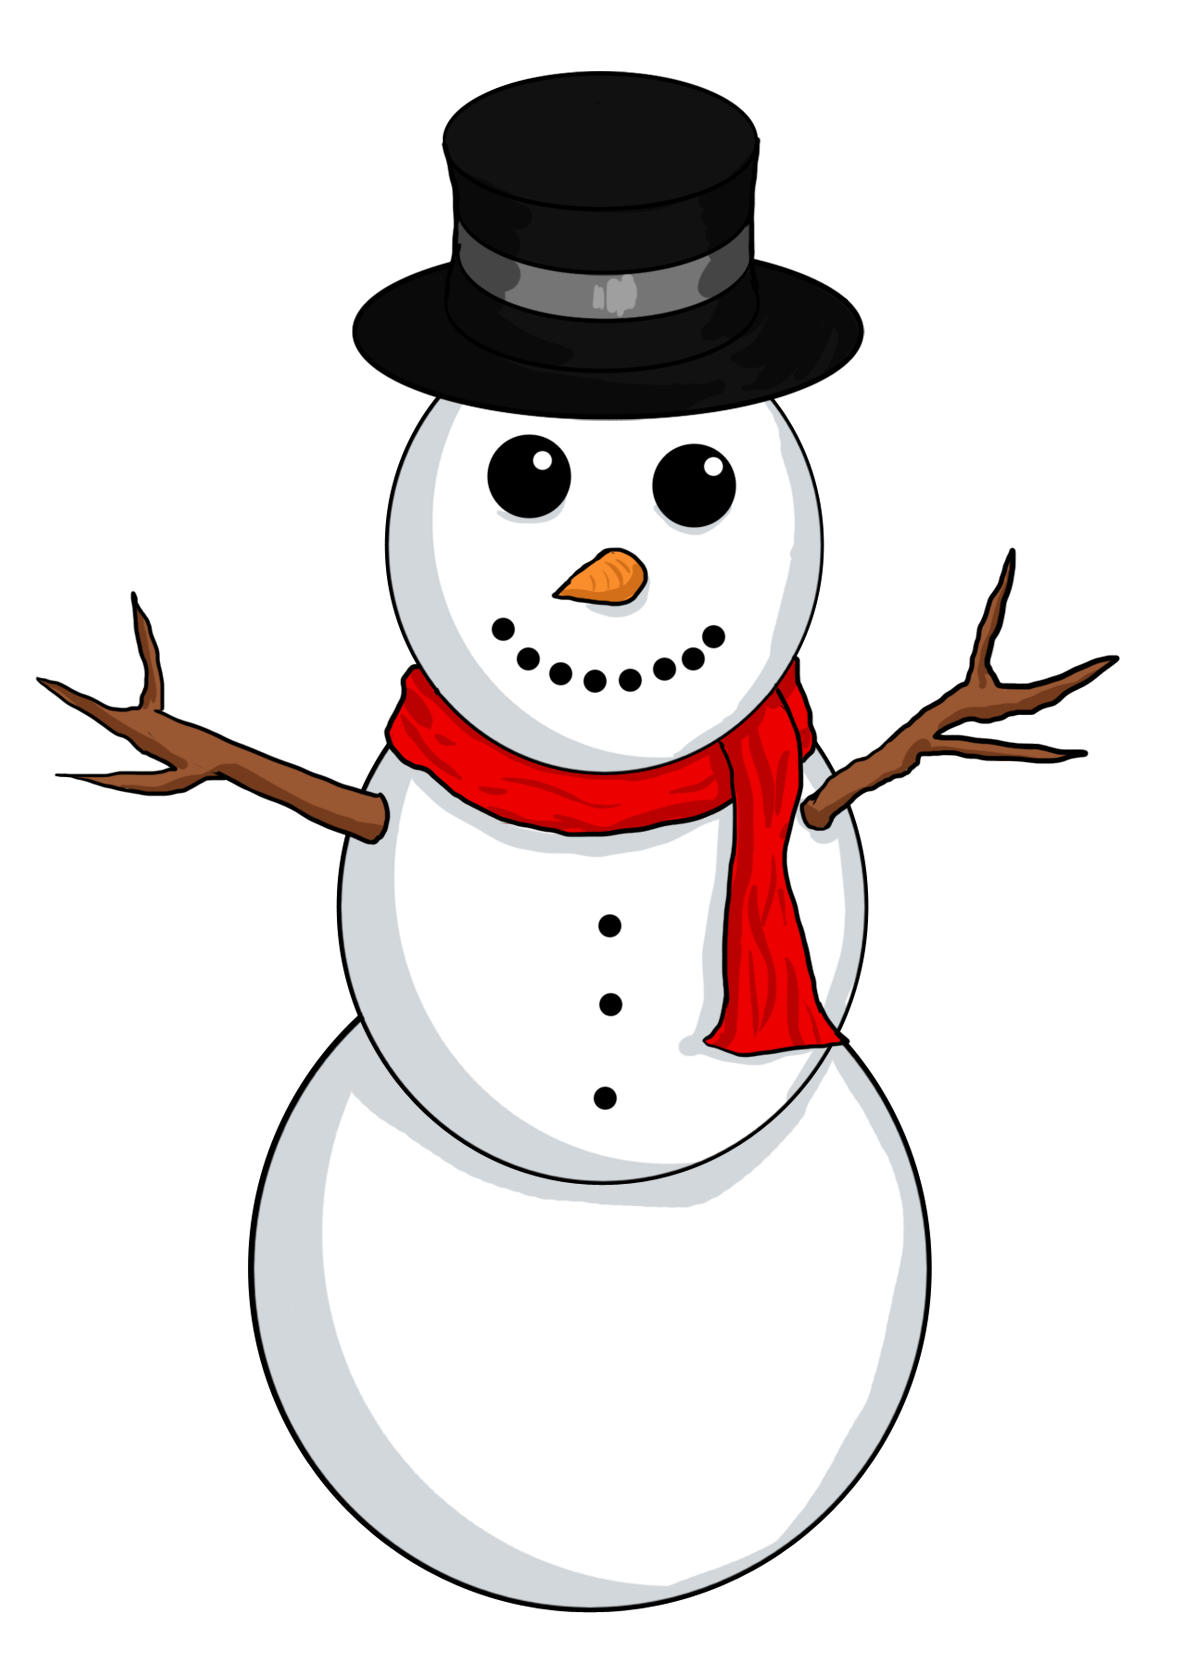 High Resolution Wallpaper | Snowman 1194x1668 px